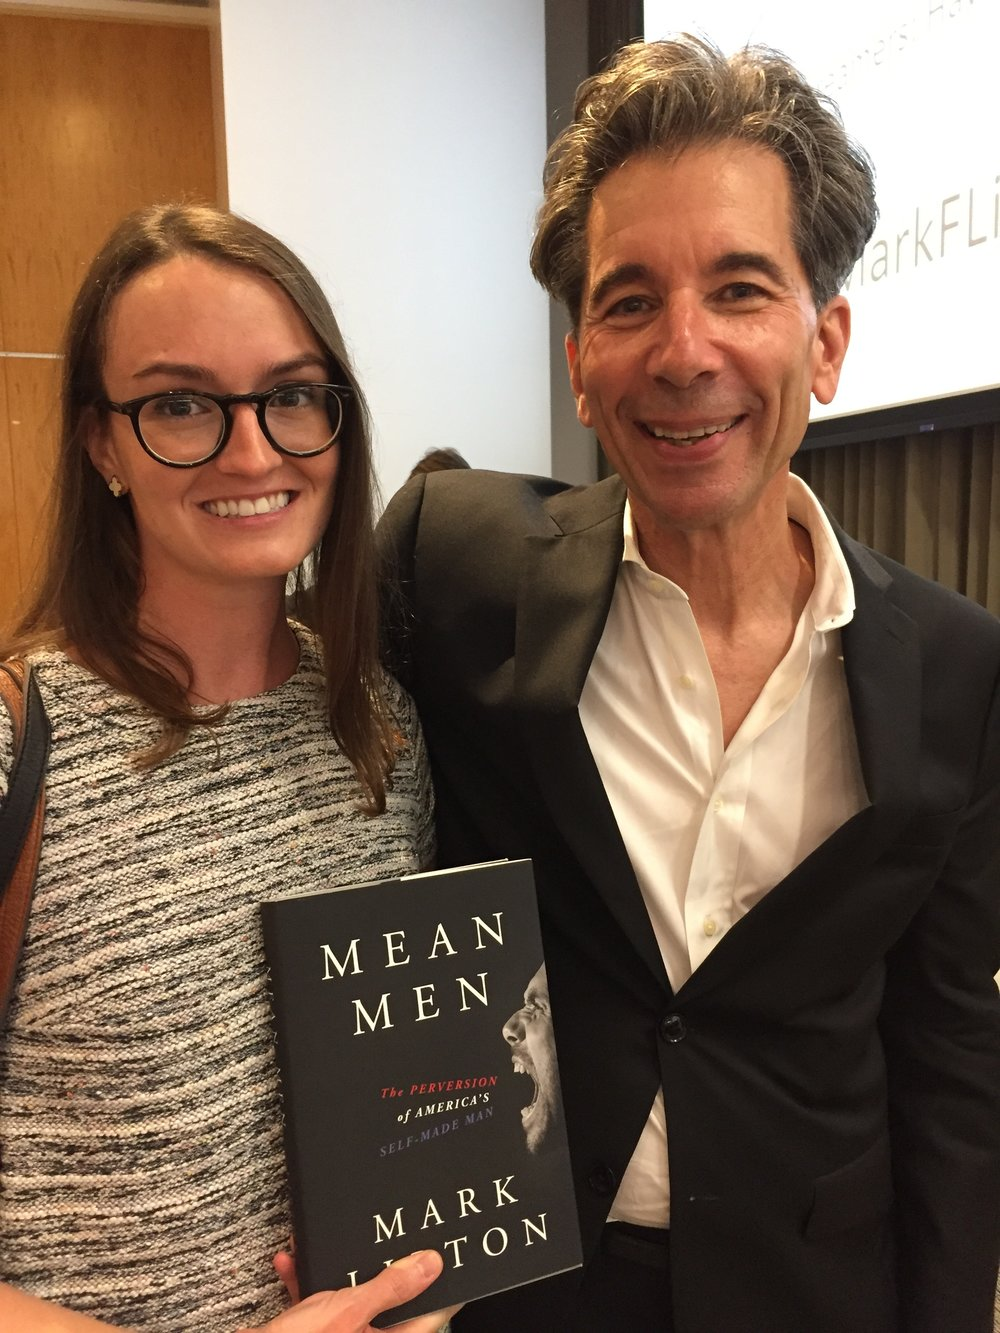 Production editor Nicole with author Mark Lipton at the NYC launch of  Mean Men , September 5, 2017